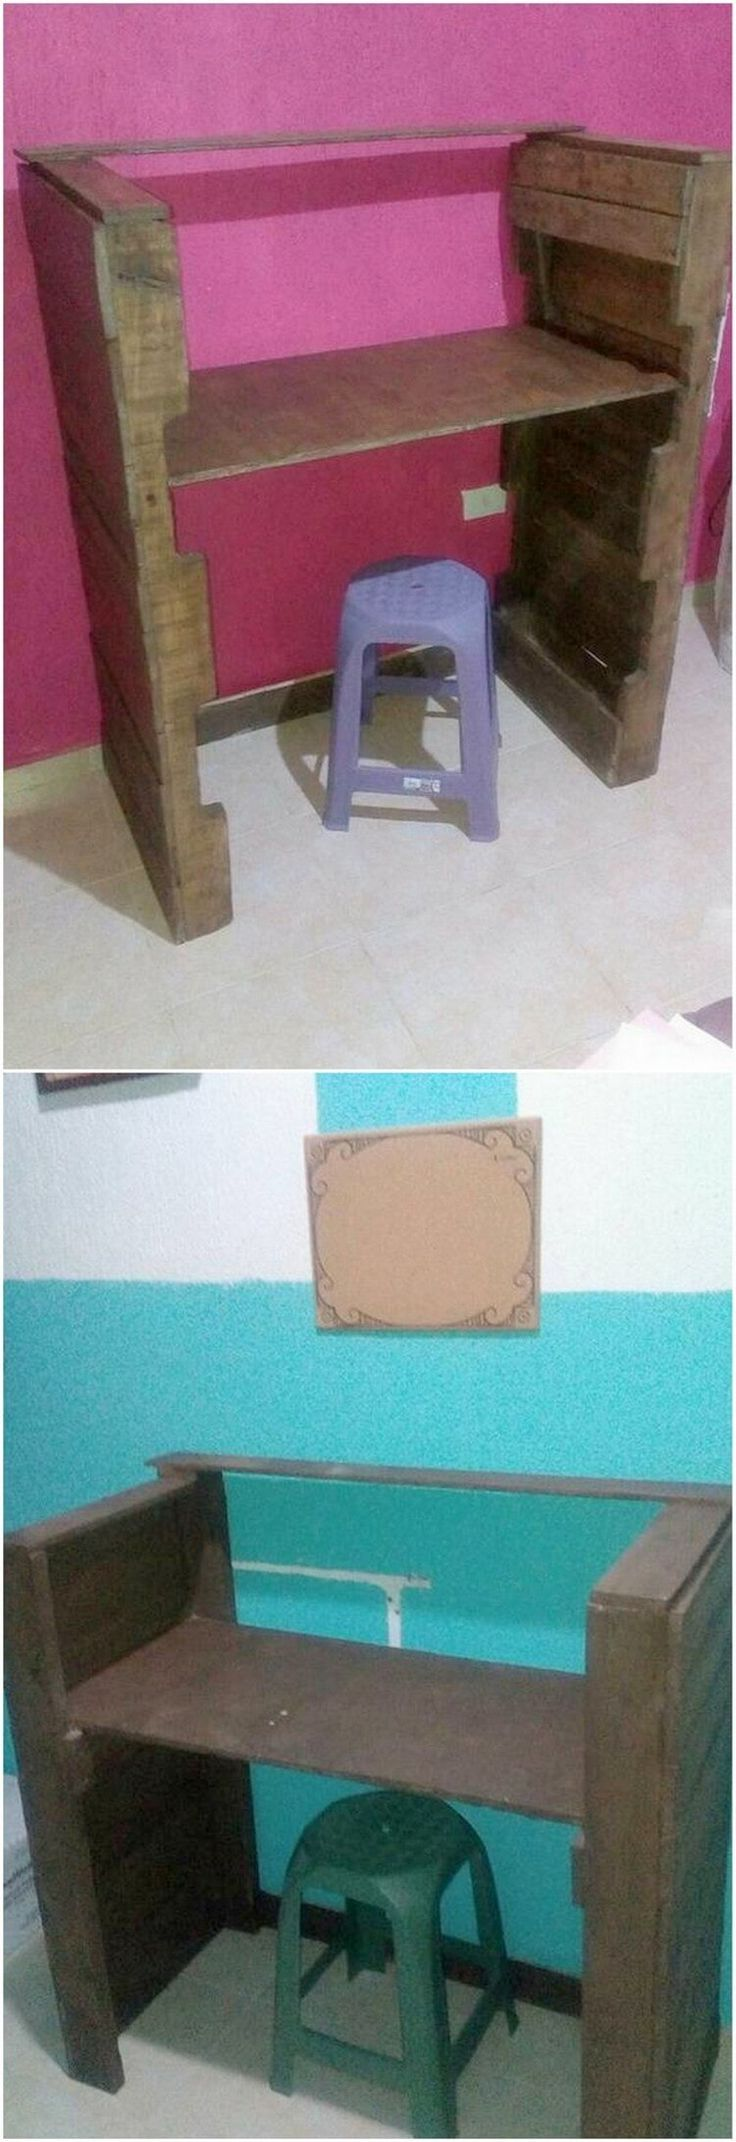 How rough and much simple this study table design of wood pallet has been crafted out for you. This table has been all carried out with the plain stacking of the wood pallet planks which you can even carry out by your own as well.